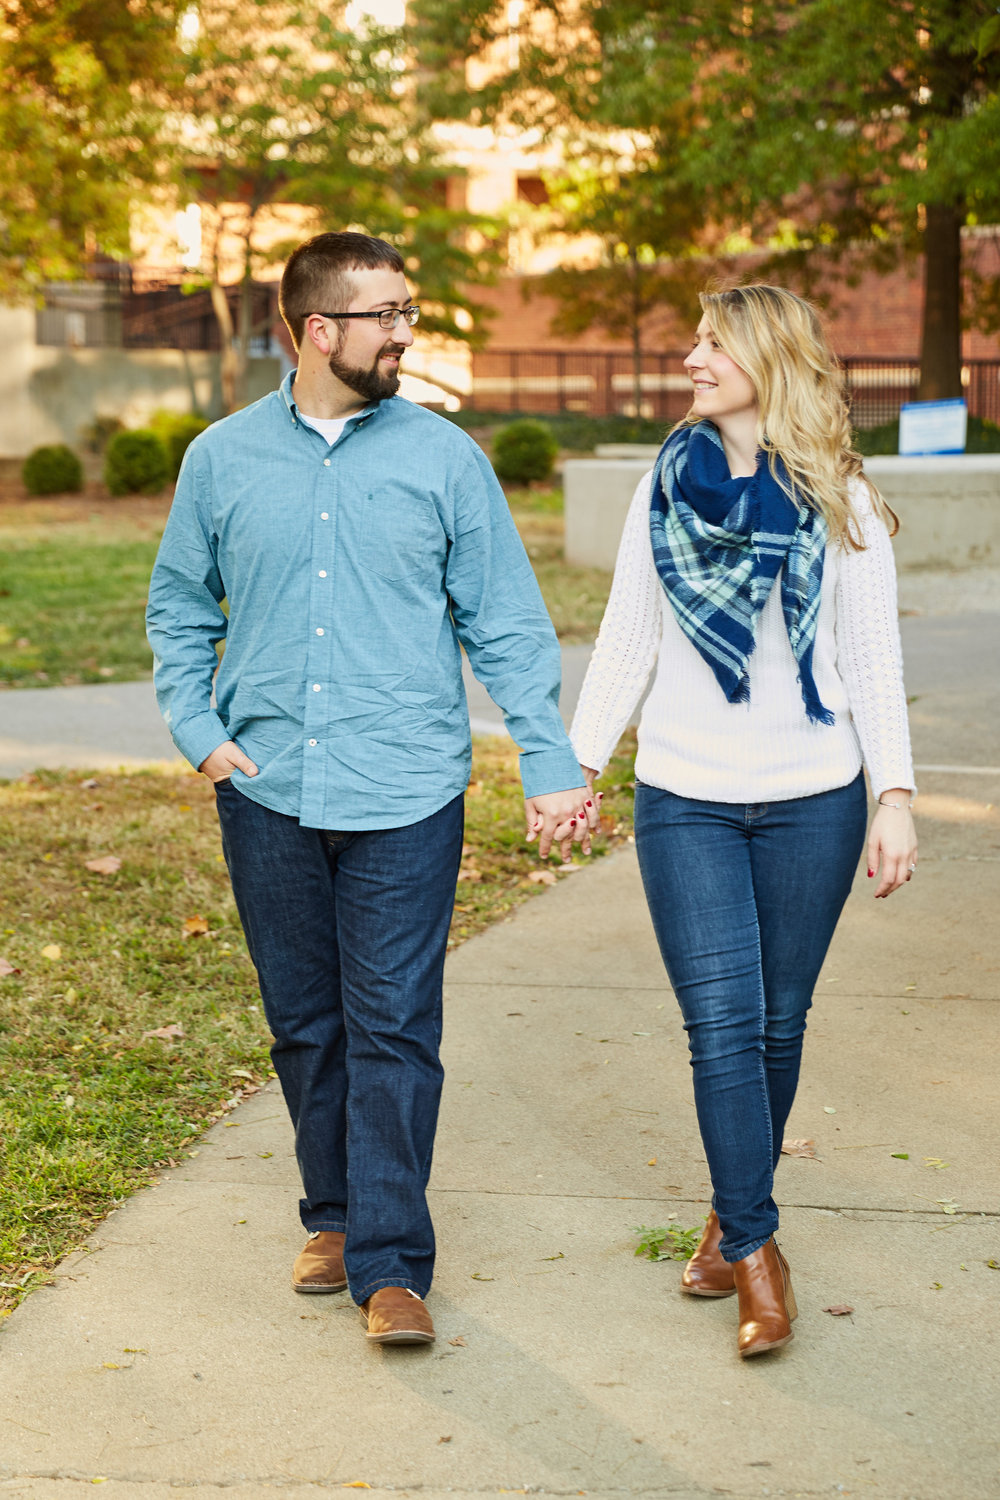 University of Kentucky Lexington Campus Alumni Engagement Photos by St Louis Wedding Photographers Oldani Photography 0 030.jpg